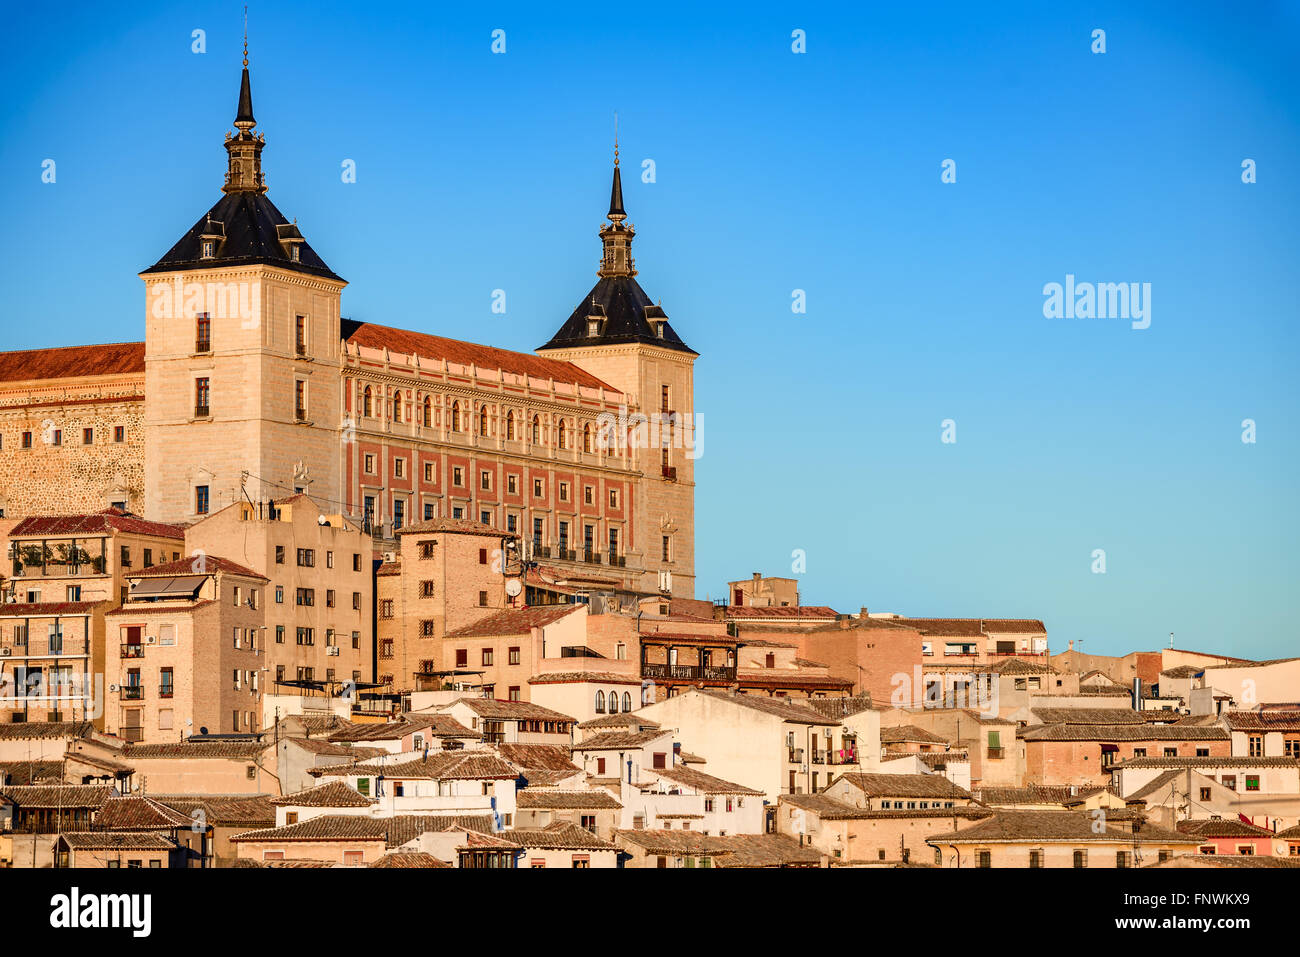 Toledo, Spain. Alcazar view in ancient city on a hill over the Tagus River, Castilla la Mancha medieval attraction of Espana. Stock Photo